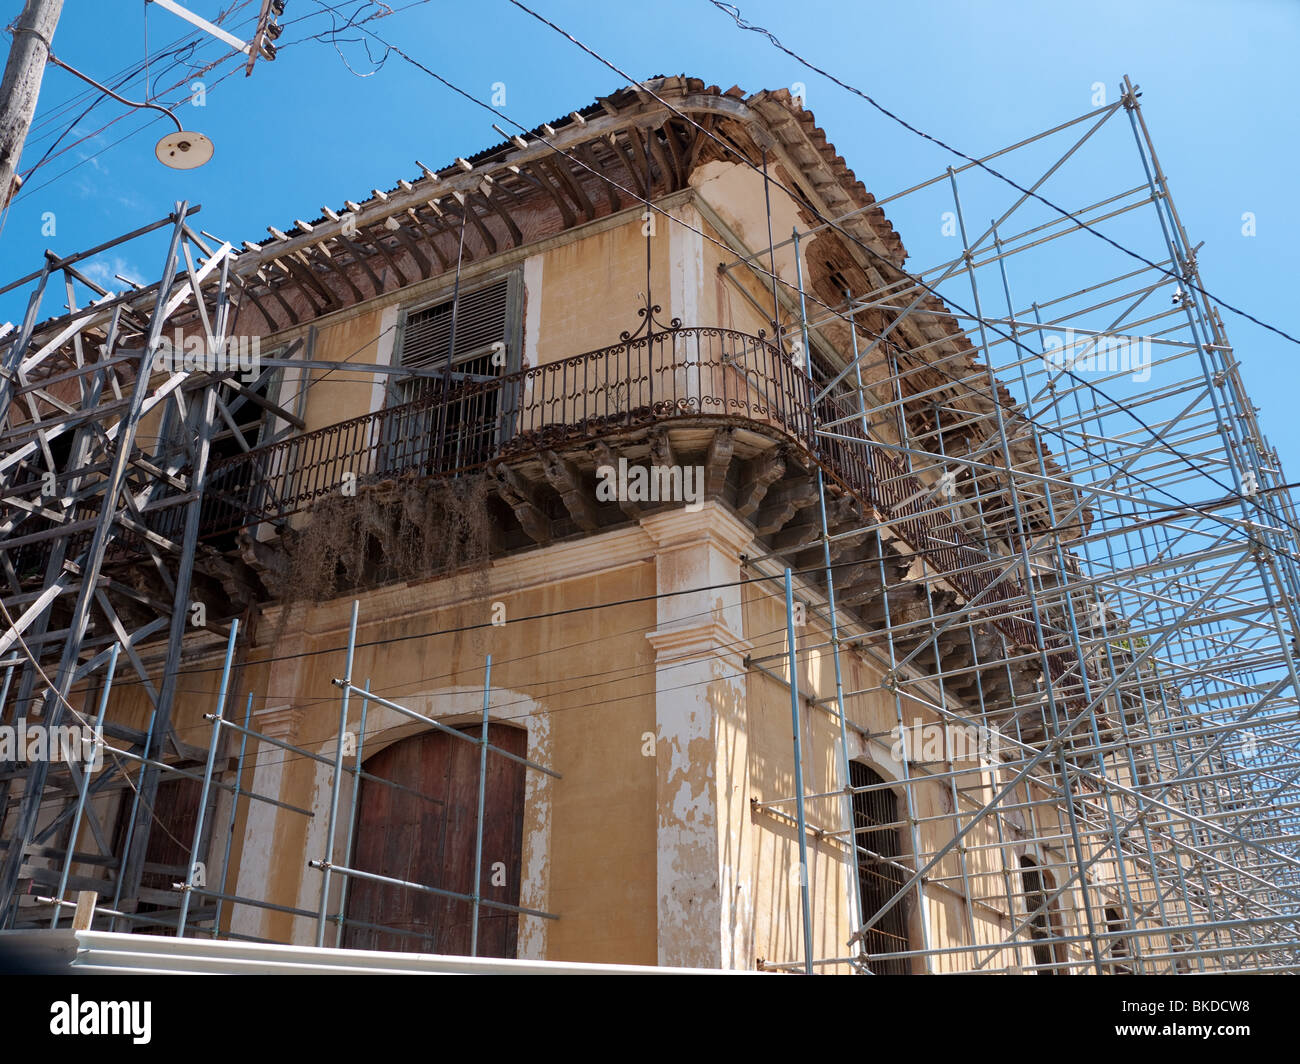 Awesome Scaffolding In Building Restoration In The Historical Center Of Trinidad,  Cuba   Stock Image